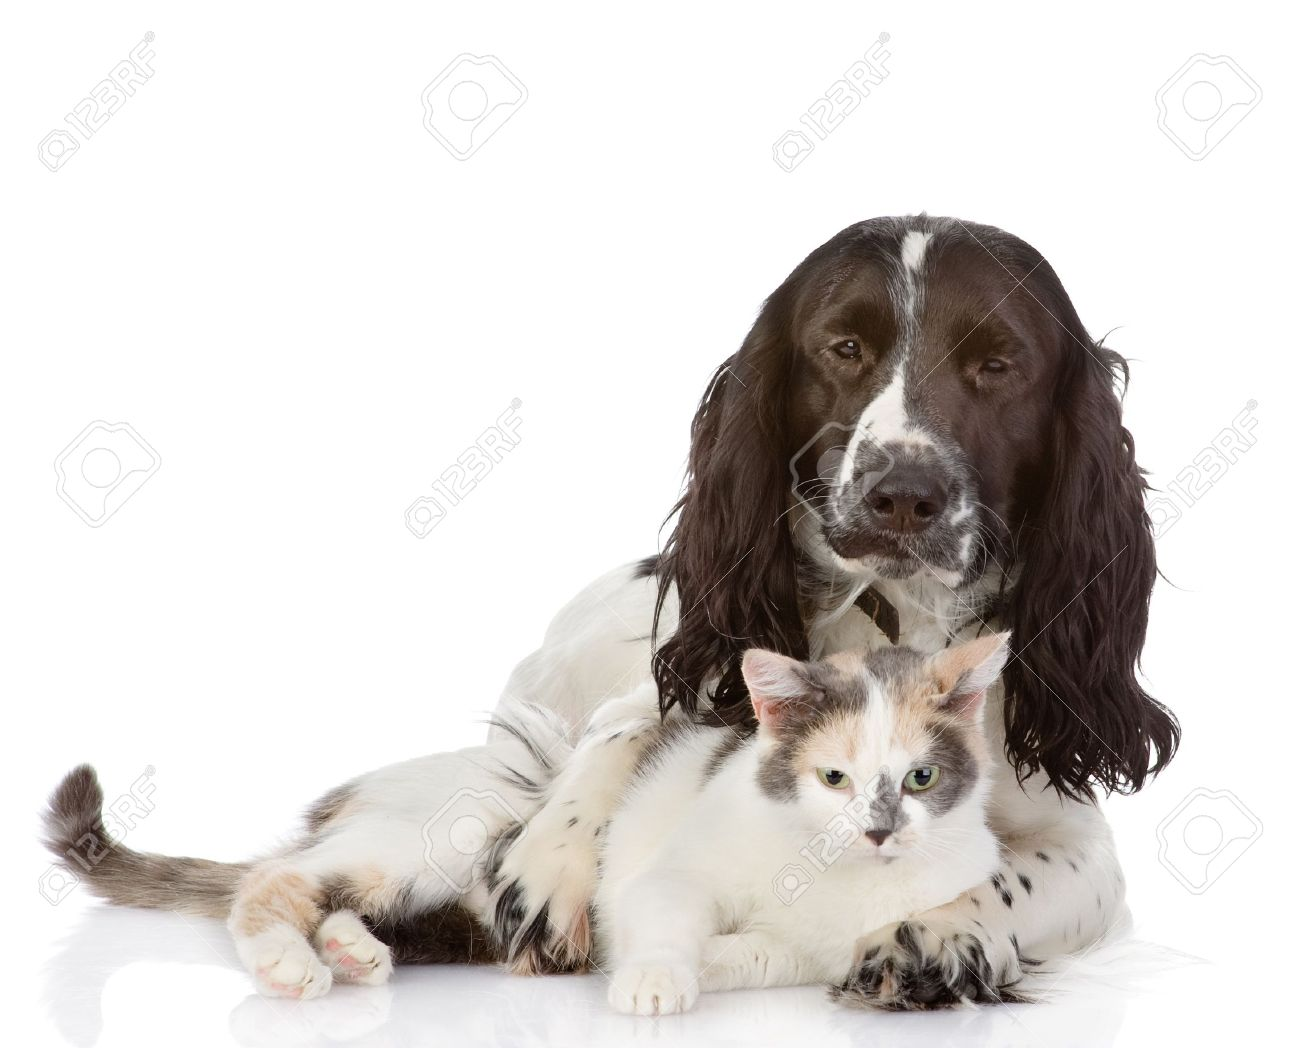 English Cocker Spaniel dog and kitten together  looking at camera  isolated on white background Stock Photo - 20901527